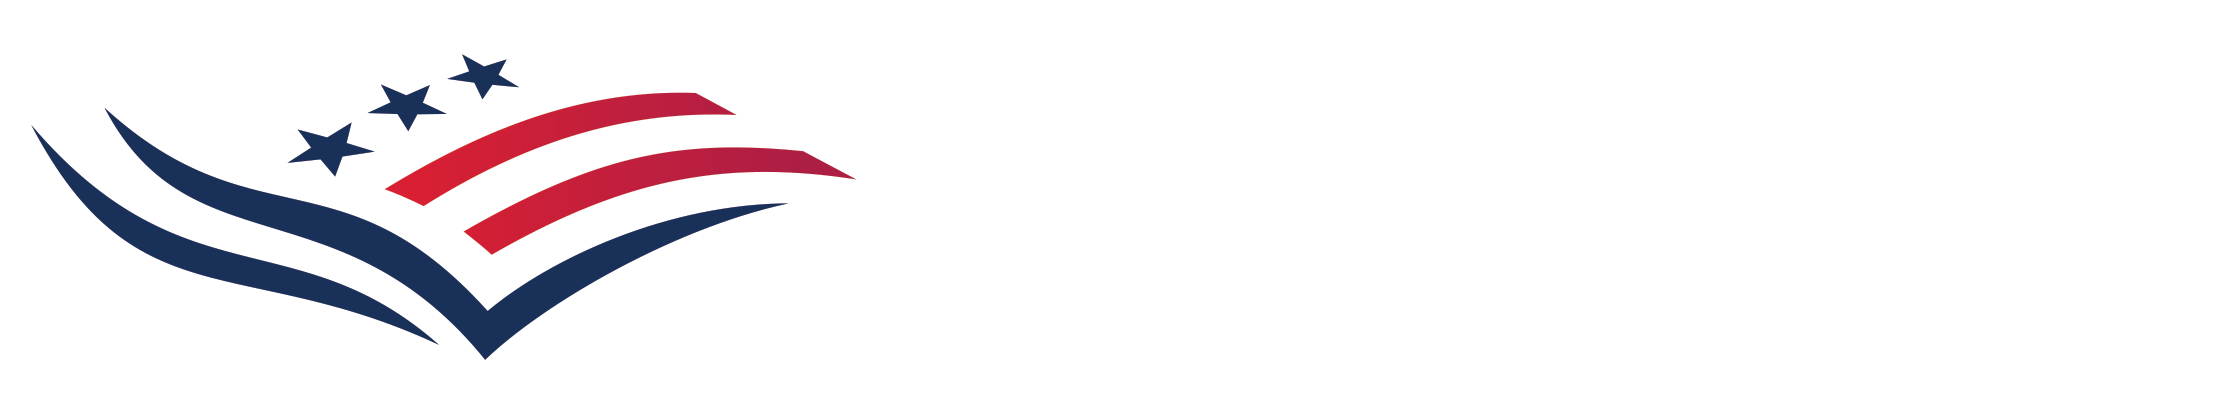 U.S. Veterans Business Alliance